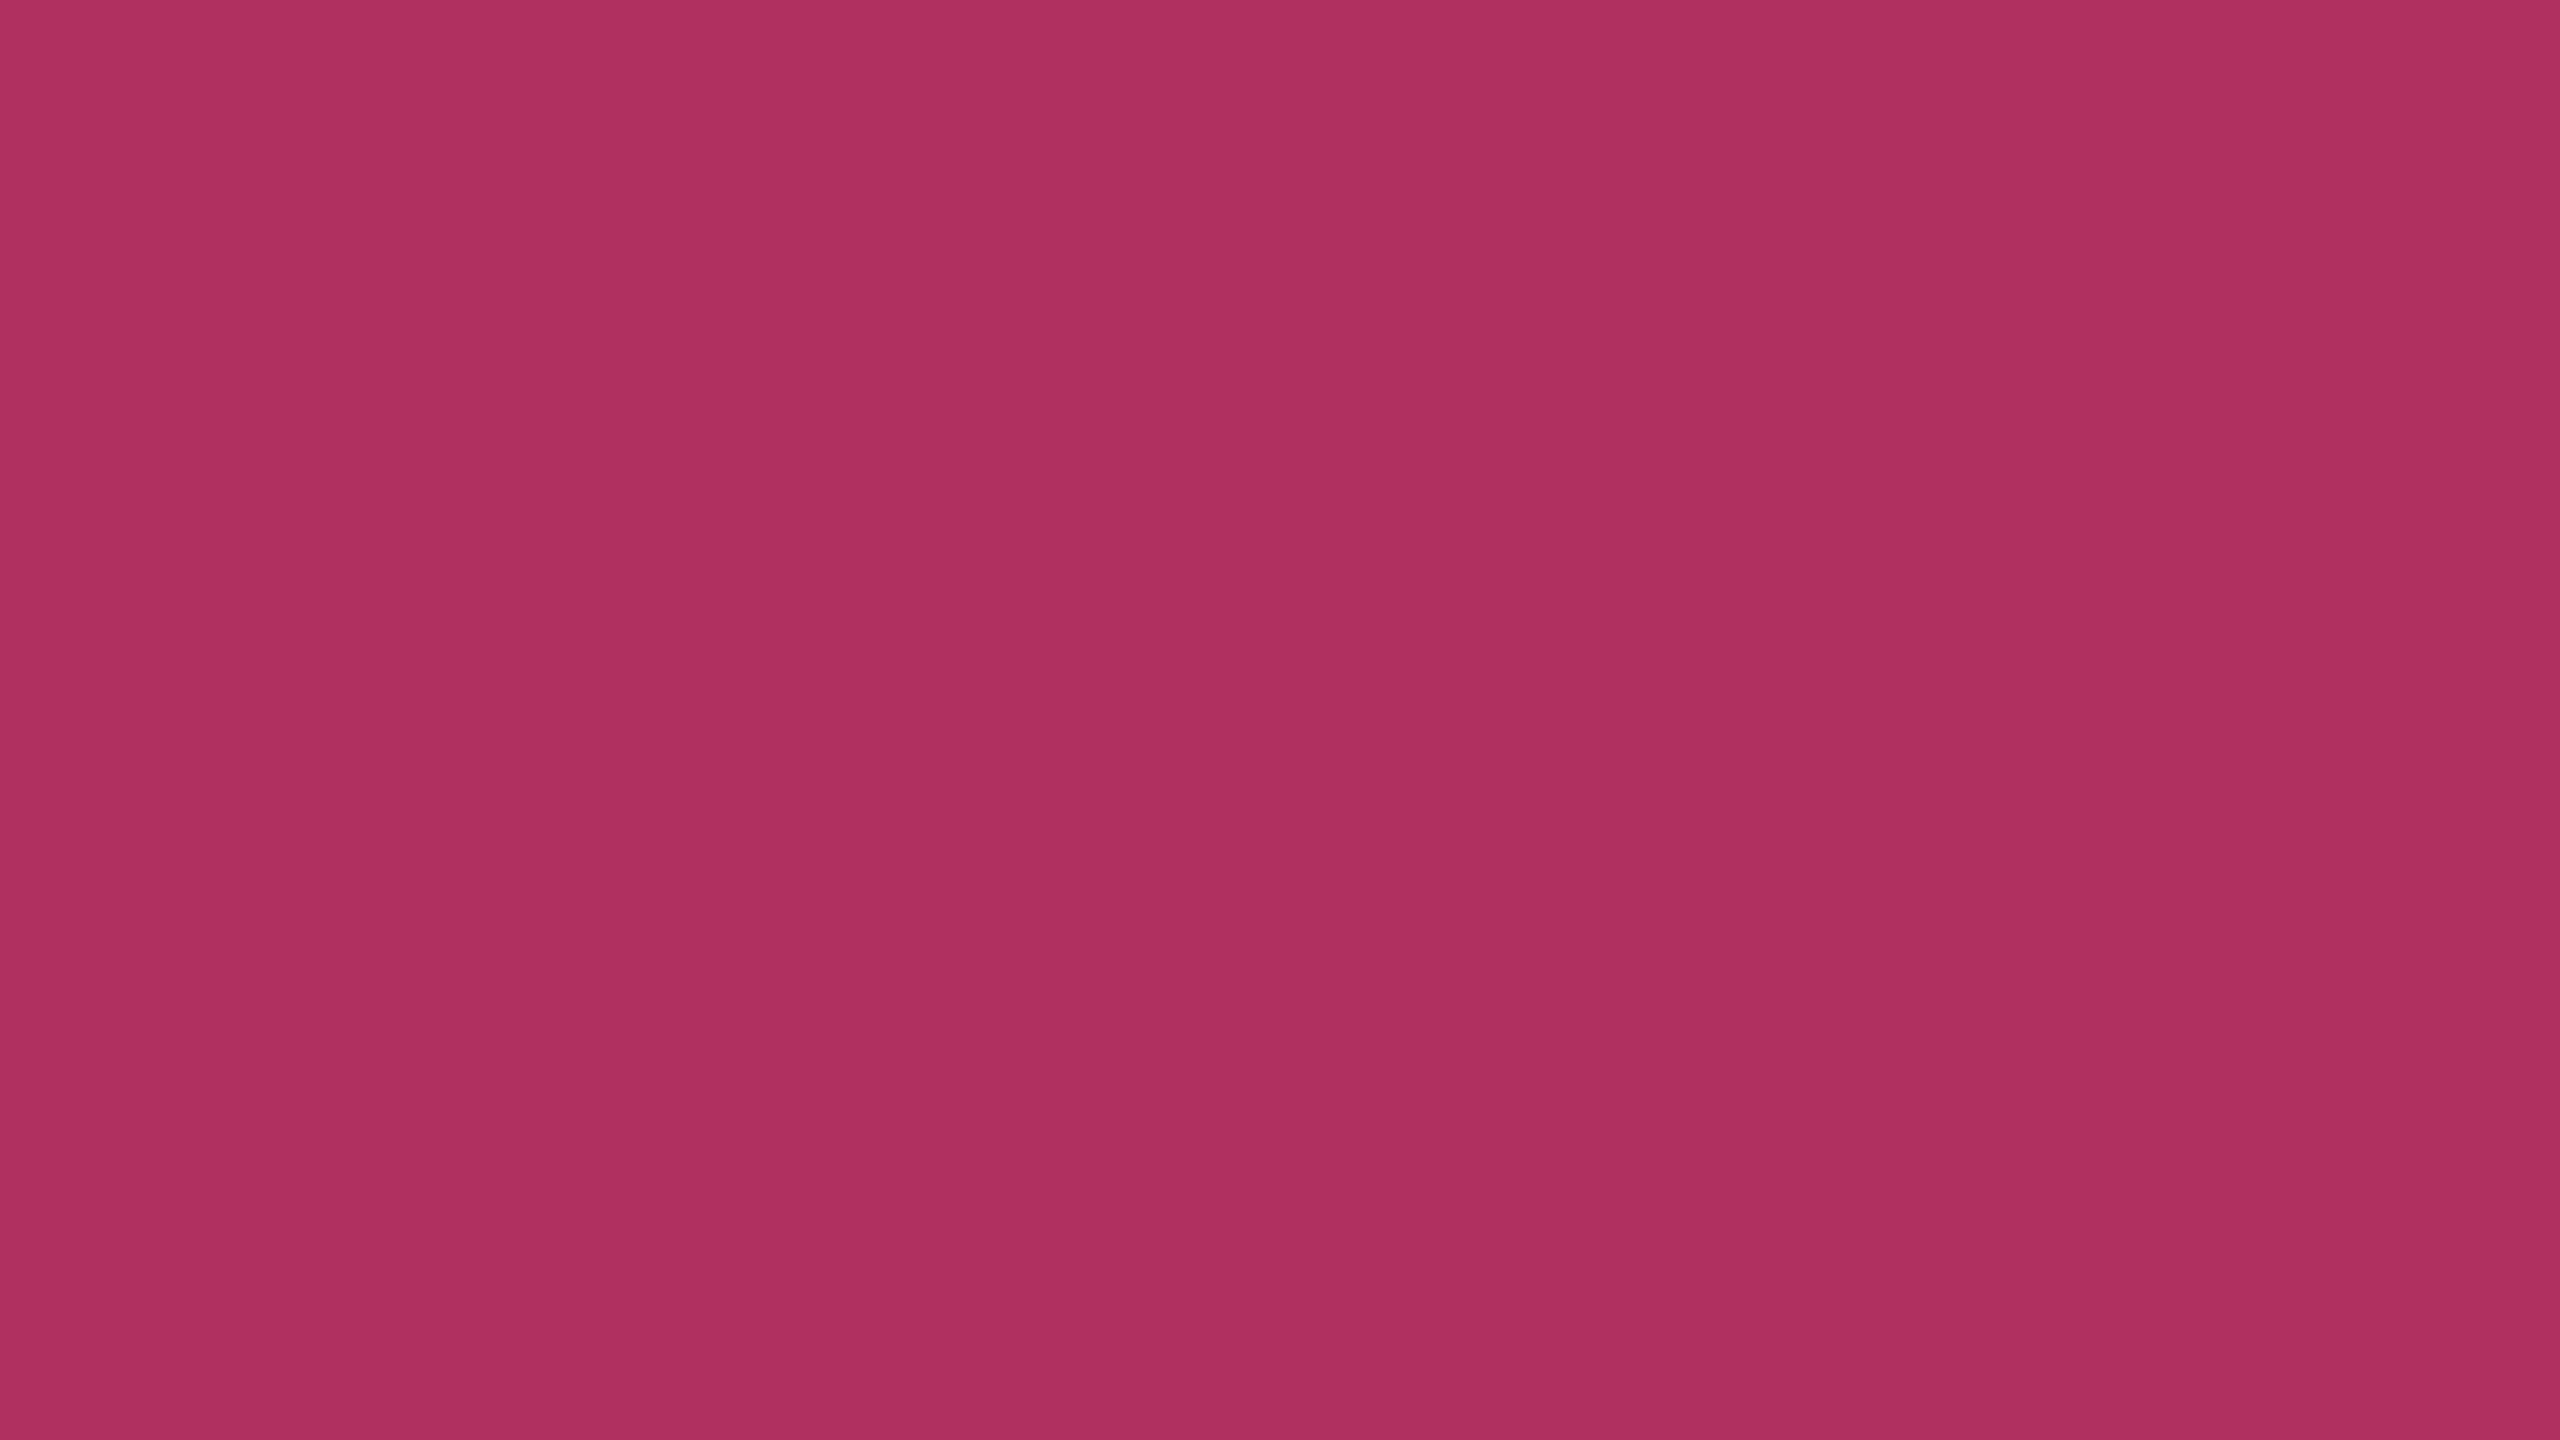 2560x1440 Maroon X11 Gui Solid Color Background